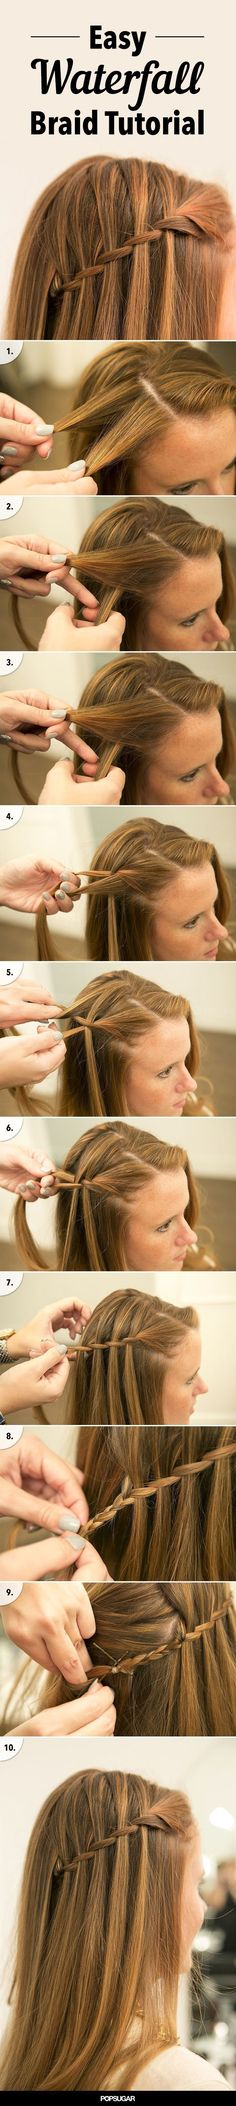 A DIY Braided Chignon